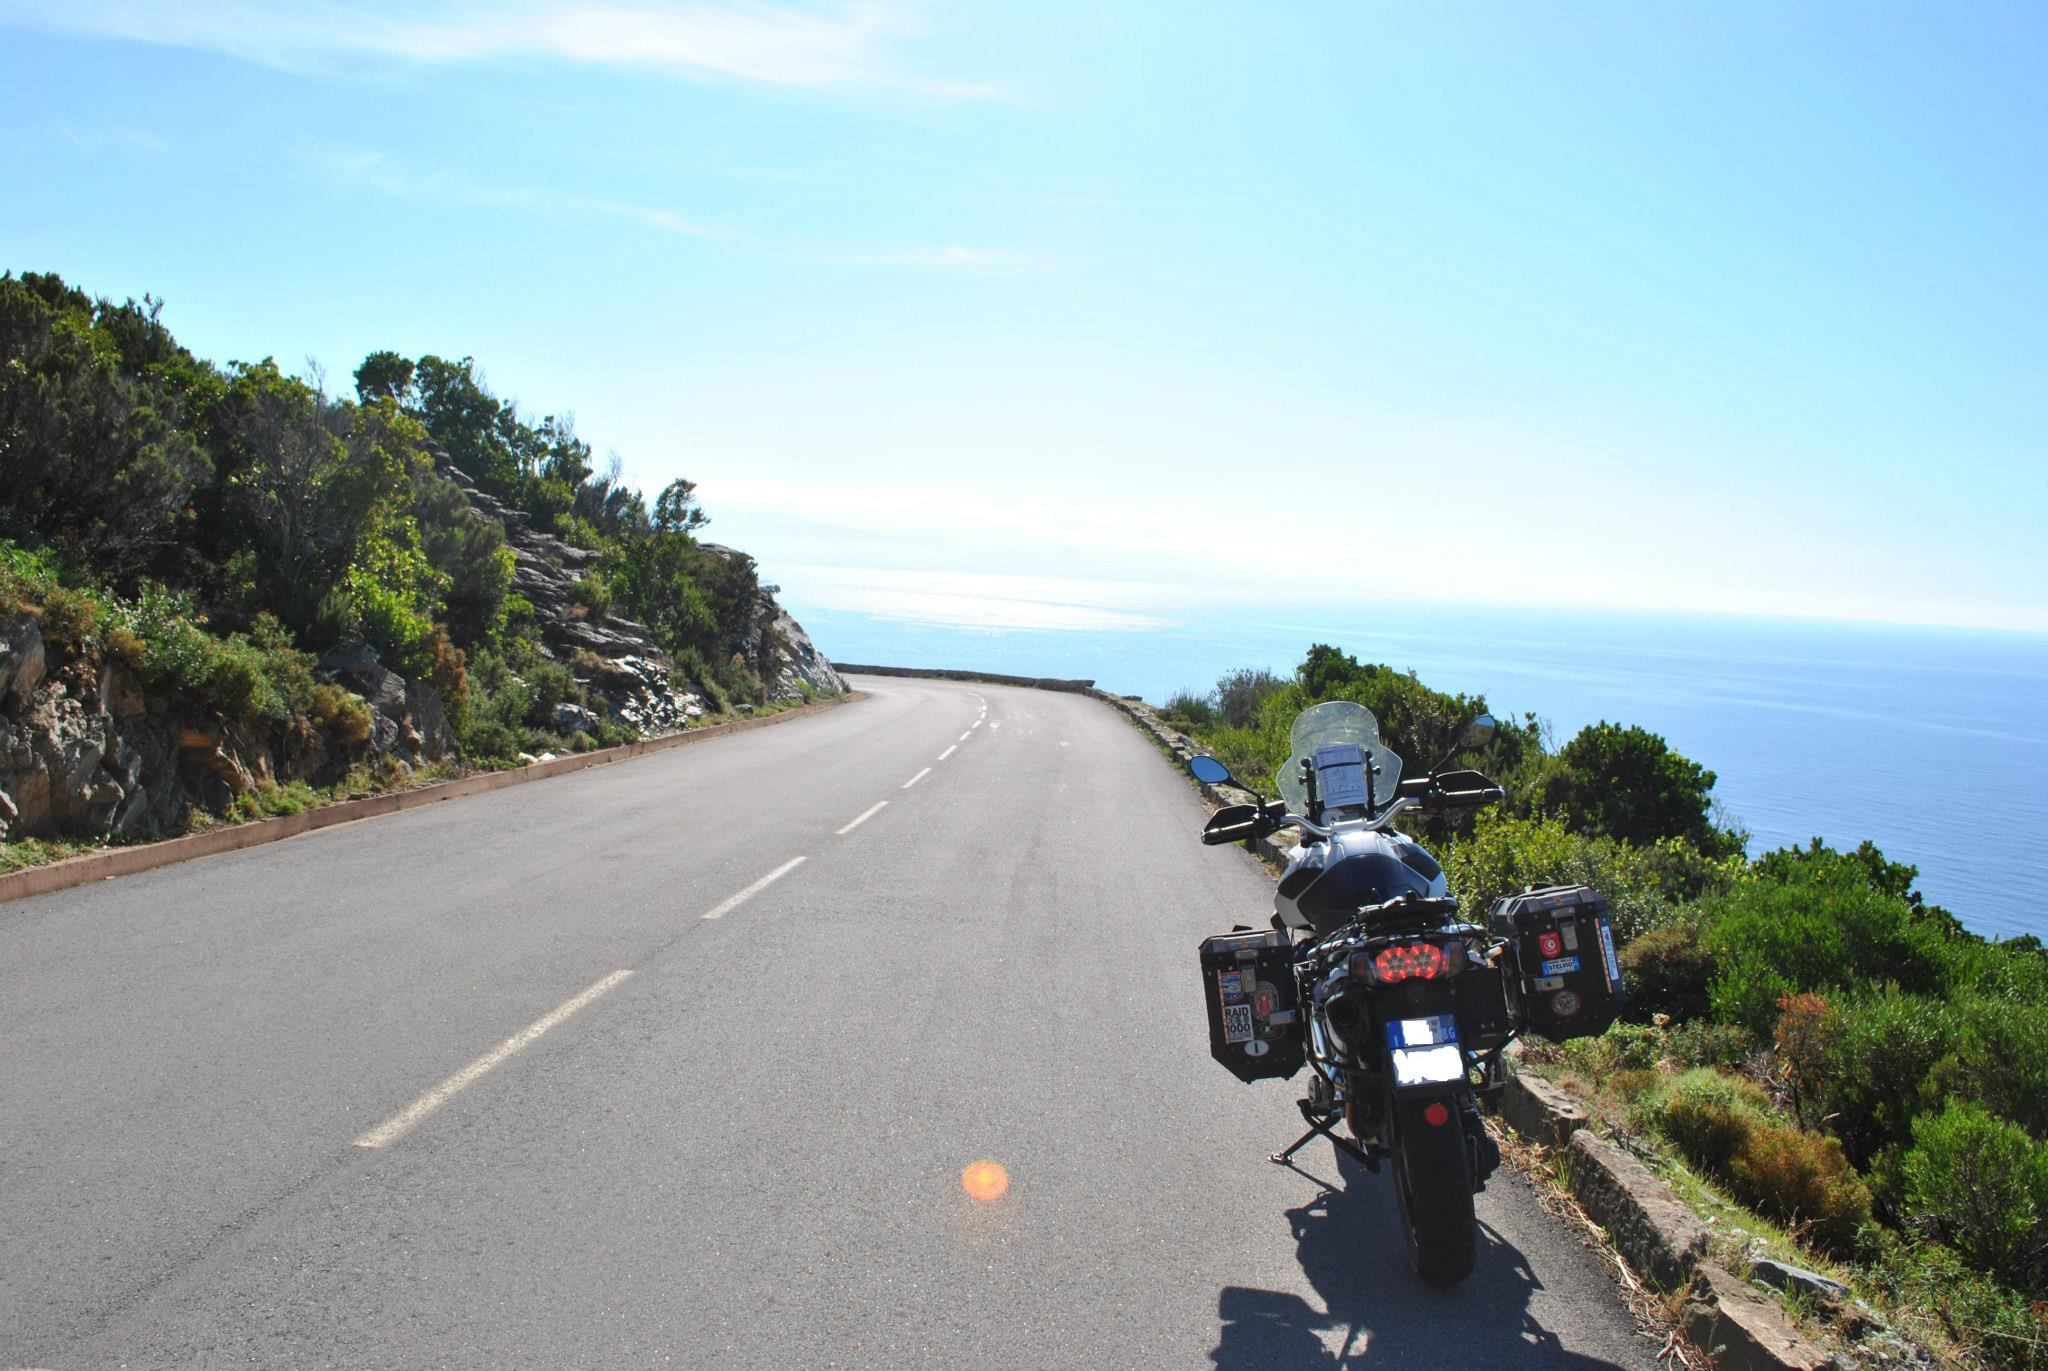 Come viaggiare in moto d'estate